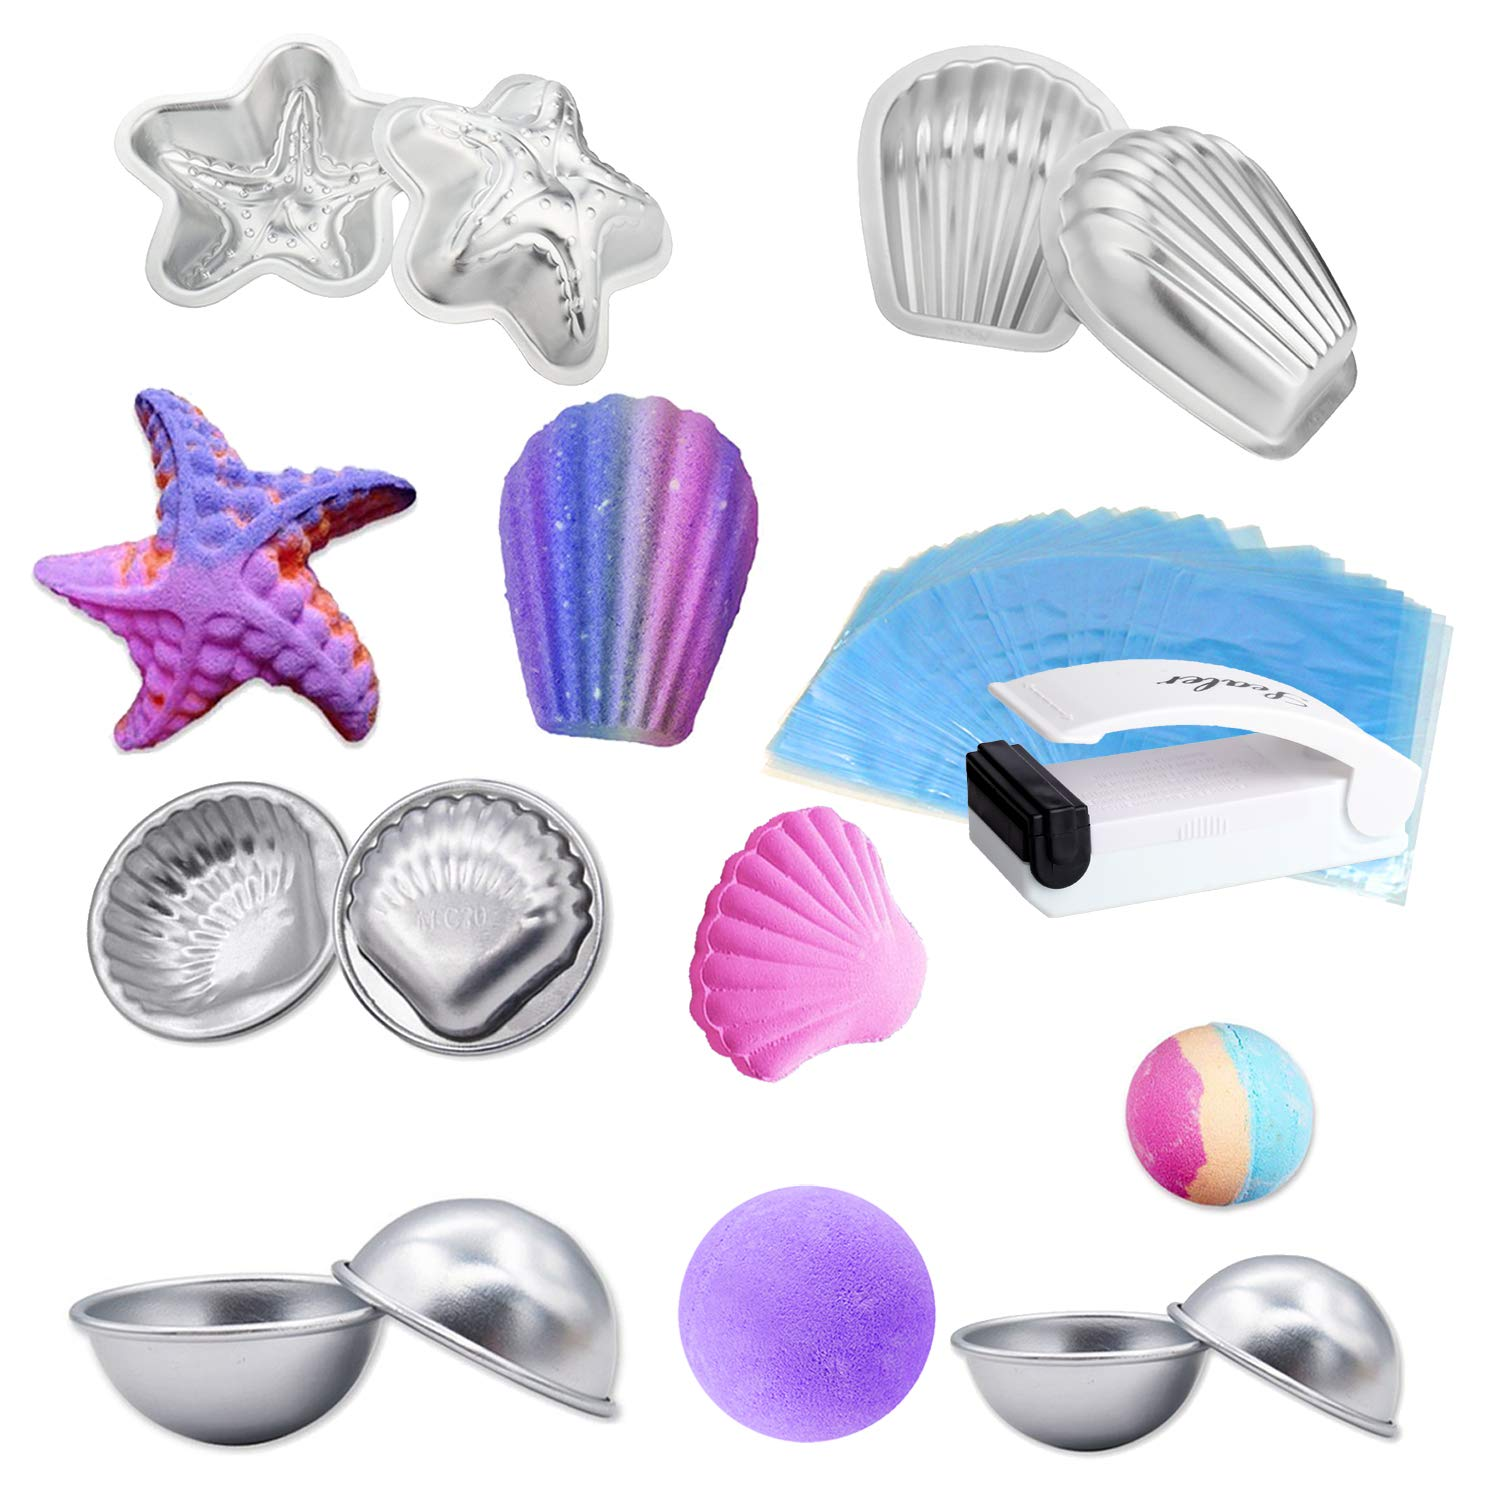 LAWOHO DIY Metal Bath Bomb Mold Handmade Soap Maker Kit Fizzles Crafting Supplies 5 Set 10 Pieces with 100 Pieces Shrink Wrap Bags and 1 Piece Mini Heat Sealer